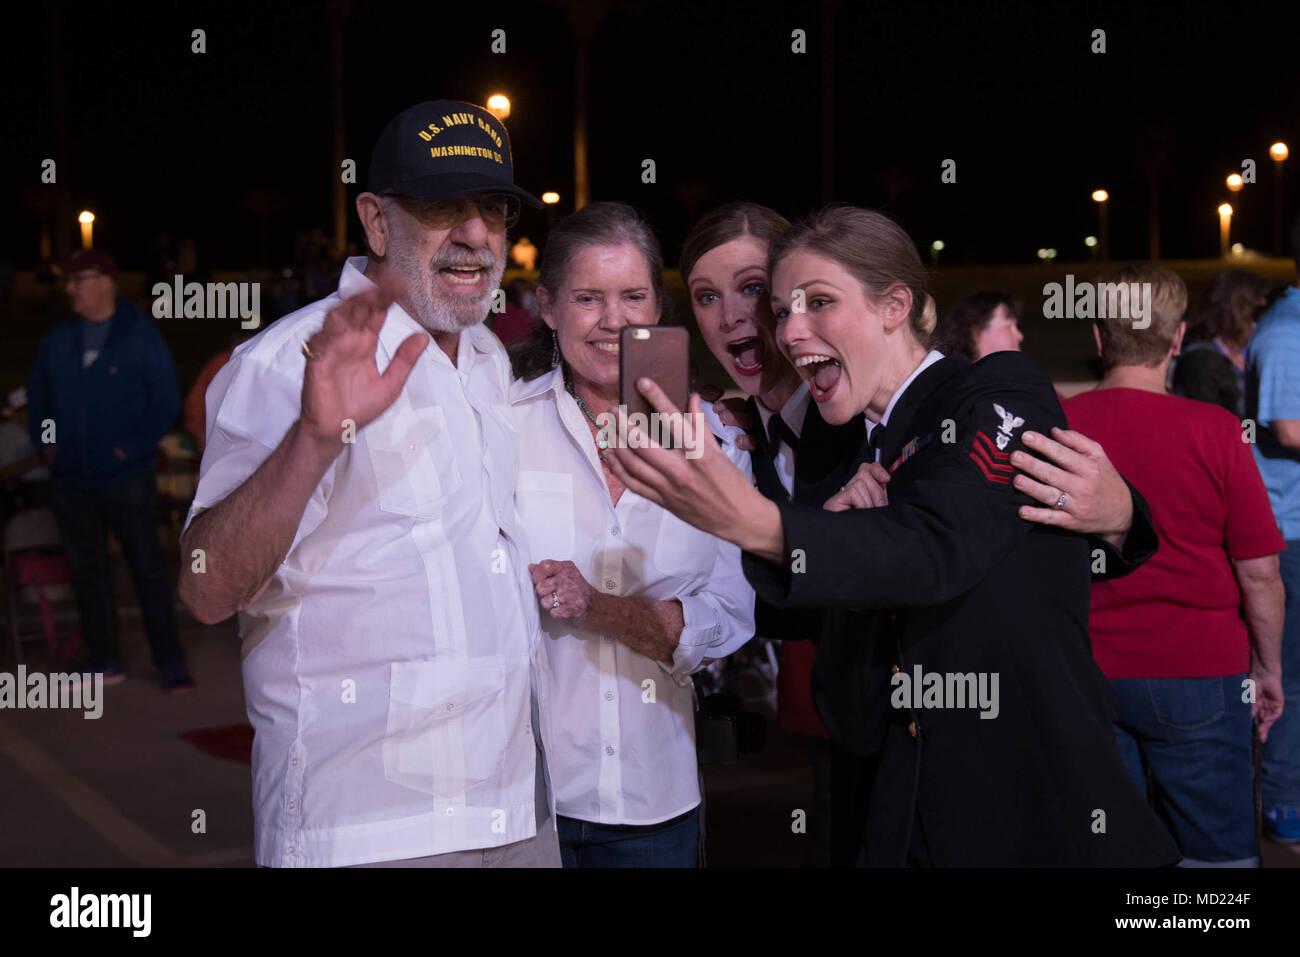 180312-N-NW255-1115 SUN CITY, Ariz. (March 12, 2018) Chief Musician Jennifer Stothoff, center, and Musician 1st Class Chelsi Ervien meet the parents of Chief Musician Amanda Cline, the Navy Band's head of productions. The four video conferenced with Cline, who is back home in Washington, D.C., after a performance by the U.S. Navy Band Sea Chanters at the Sun Bowl Amphitheatre in Sun City, Arizona. The Navy's official chorus is on an 18-day tour through California, Arizona and Nevada, connecting Americans to their Navy. (U.S. Navy photo by Senior Chief Musician Melissa Bishop/Released) Stock Photo